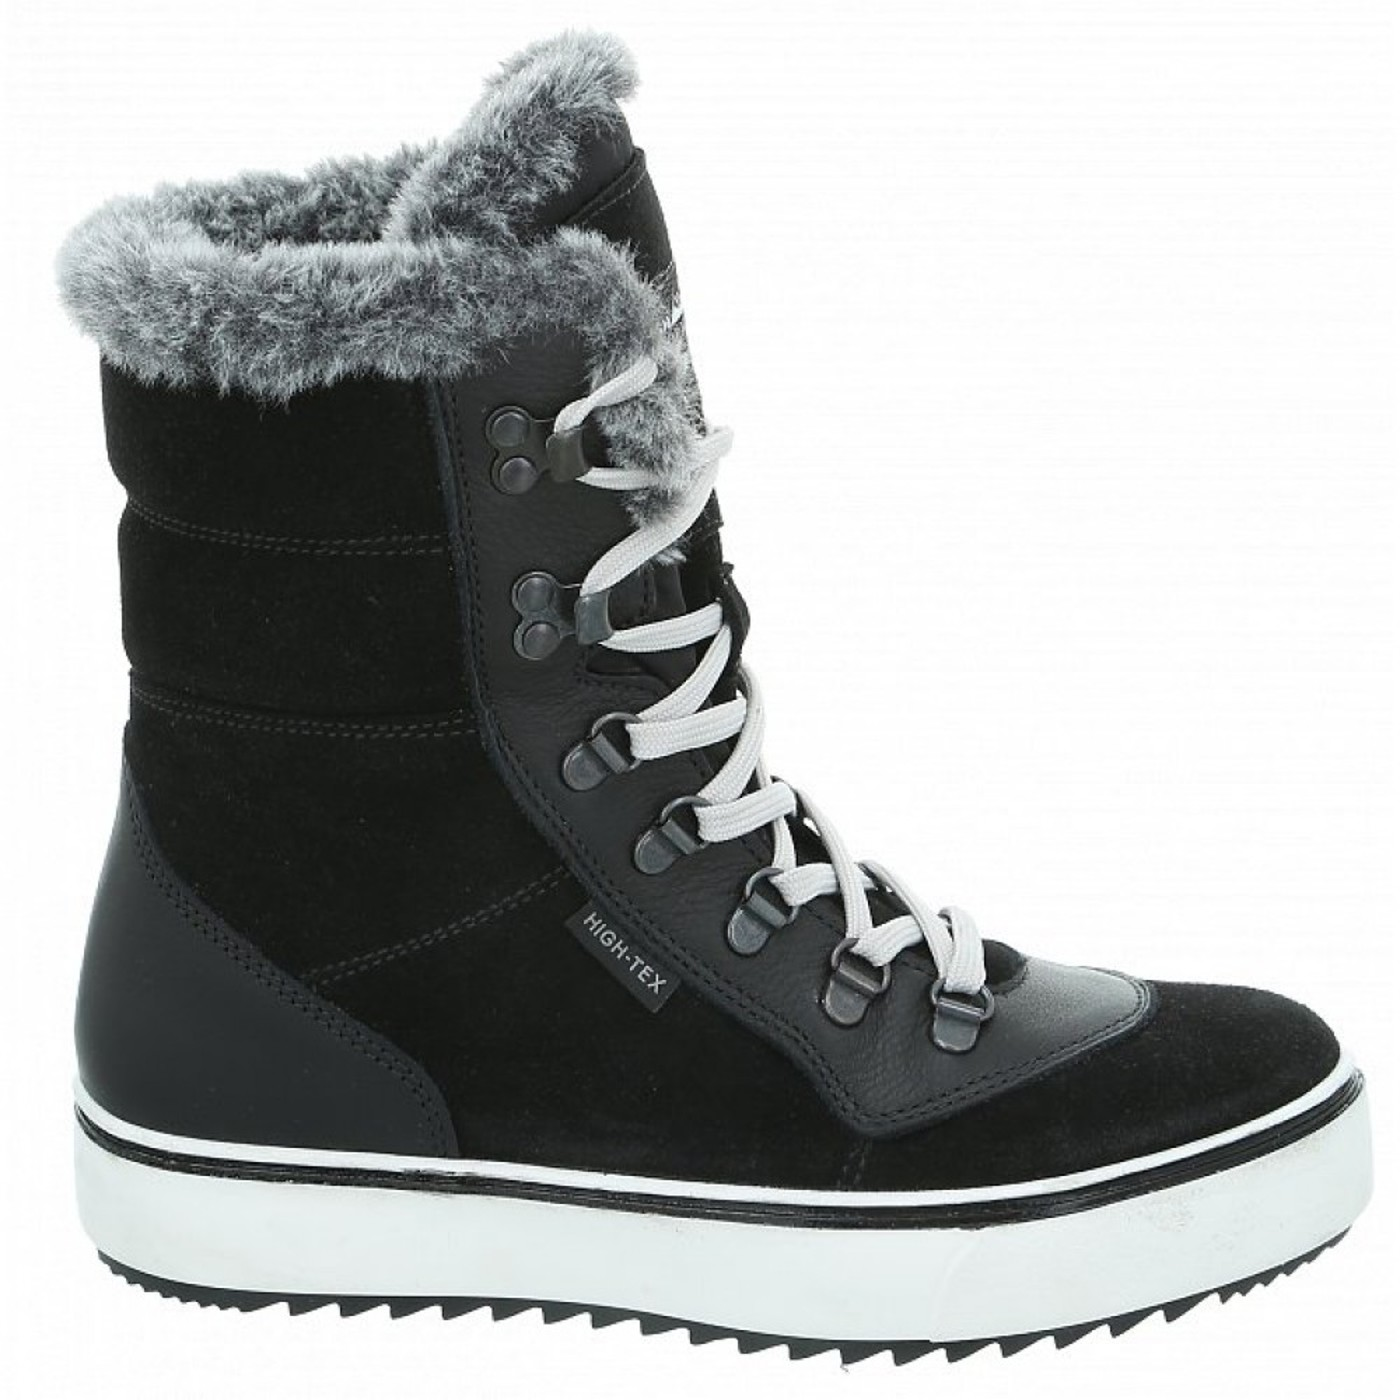 HIGH COLORADO Winterboots CORTINA LADY - Damen